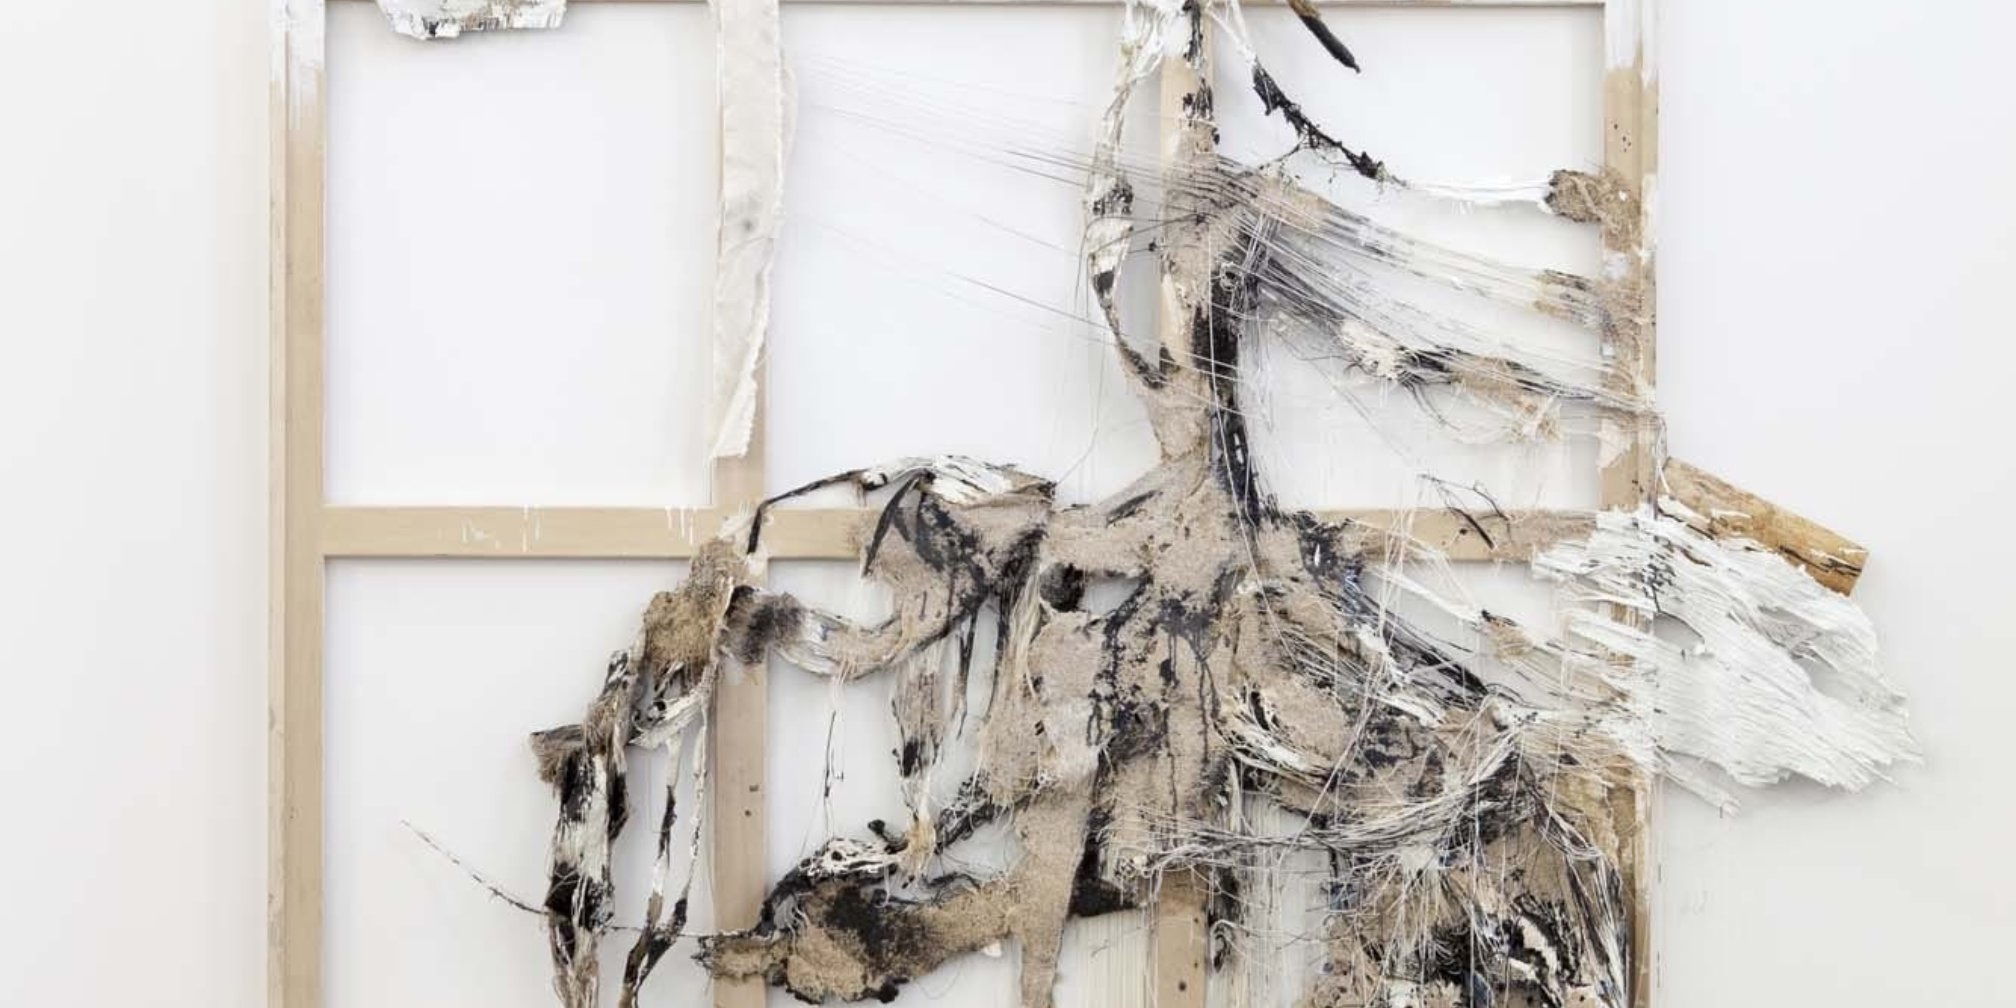 Rosy Keyser work loaned to latest Blain Southern  exhibition